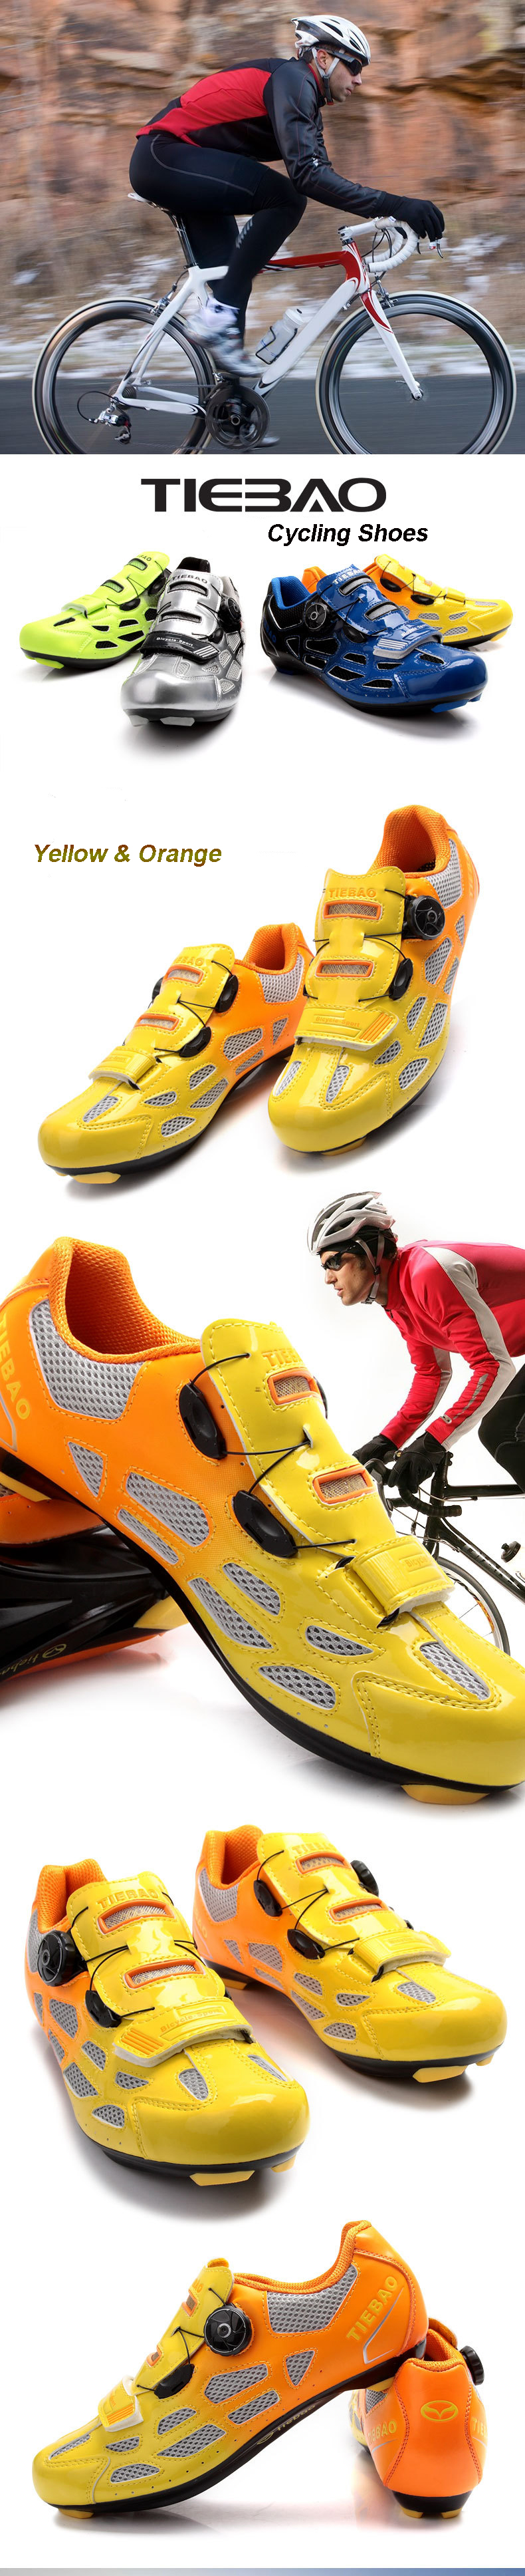 Road Bike Bicycle Shoes Outdoor Sport Cycling Self-locking Shoes